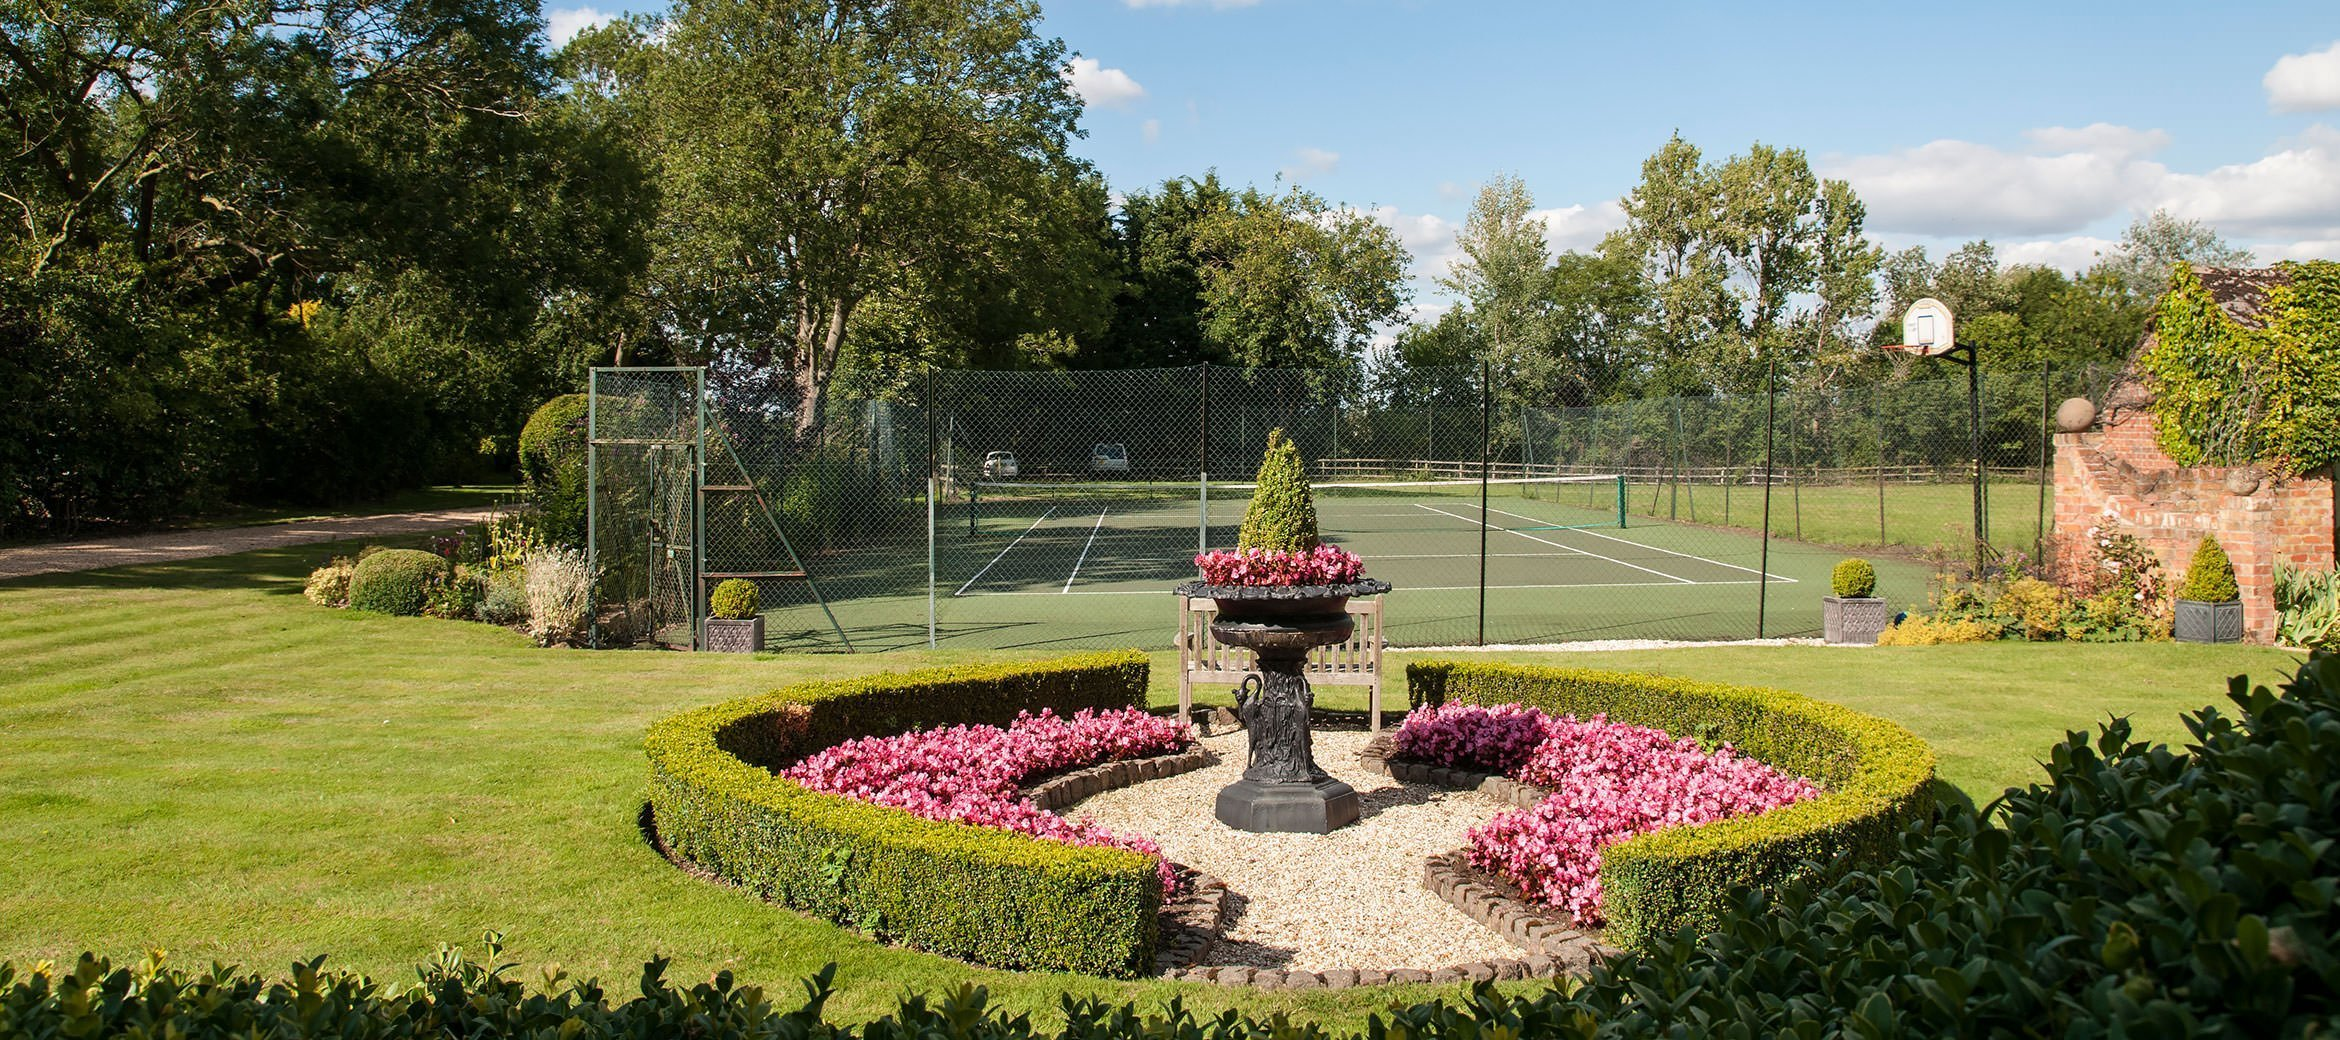 old-rectory-broadway-tennis-court